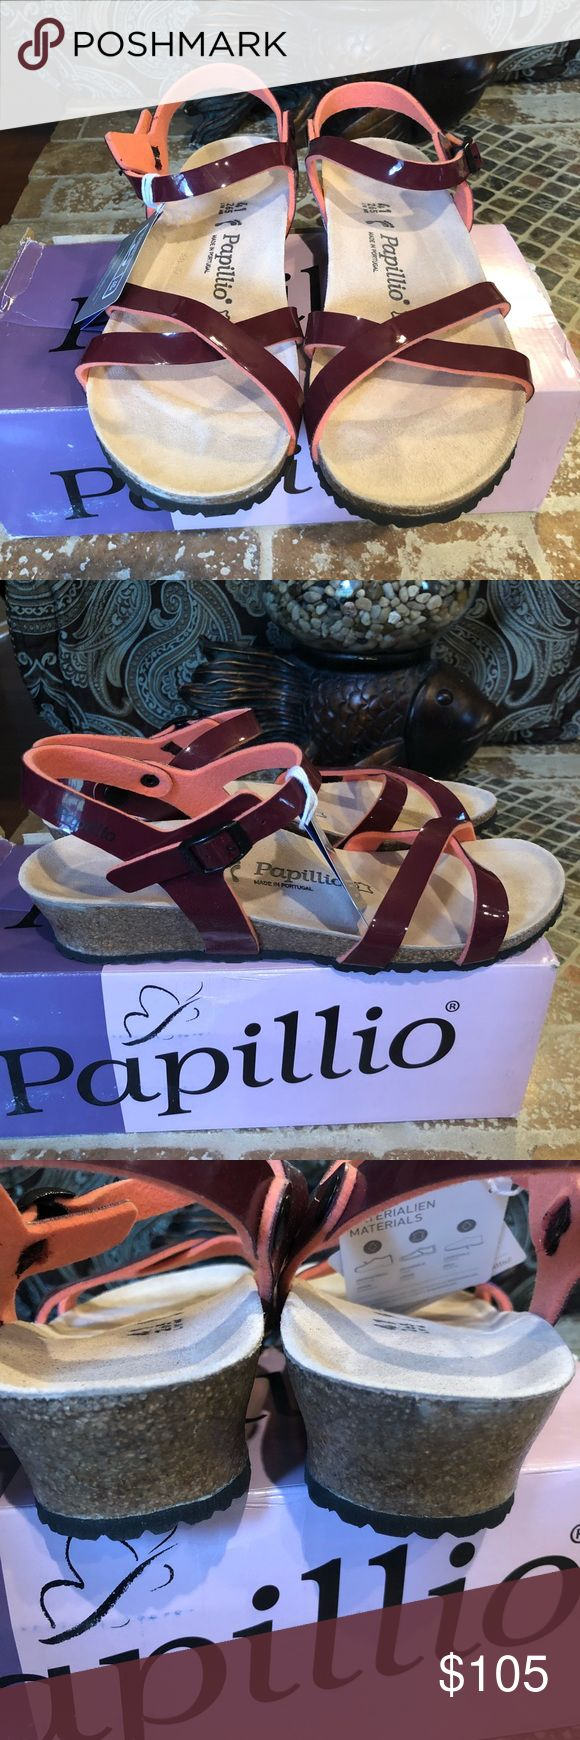 Papillio Birkenstock NWT Size 41 L10 Narrow Fit Brand new.  Original box  Alyssa Birko-Flor Two-Tone Patent Wine Papillio is proud to present a genuine best seller in the form of the feminine Alyssa strap sandal. This wedge heel sandal features a fine, crosswise strap above the instep and is popular among fashion- and comfort-conscious women on account of its svelte appearance. The upper comes in high-quality, skin-friendly Birko-Flor® with a patent finish and is lined in soft, contrasting…